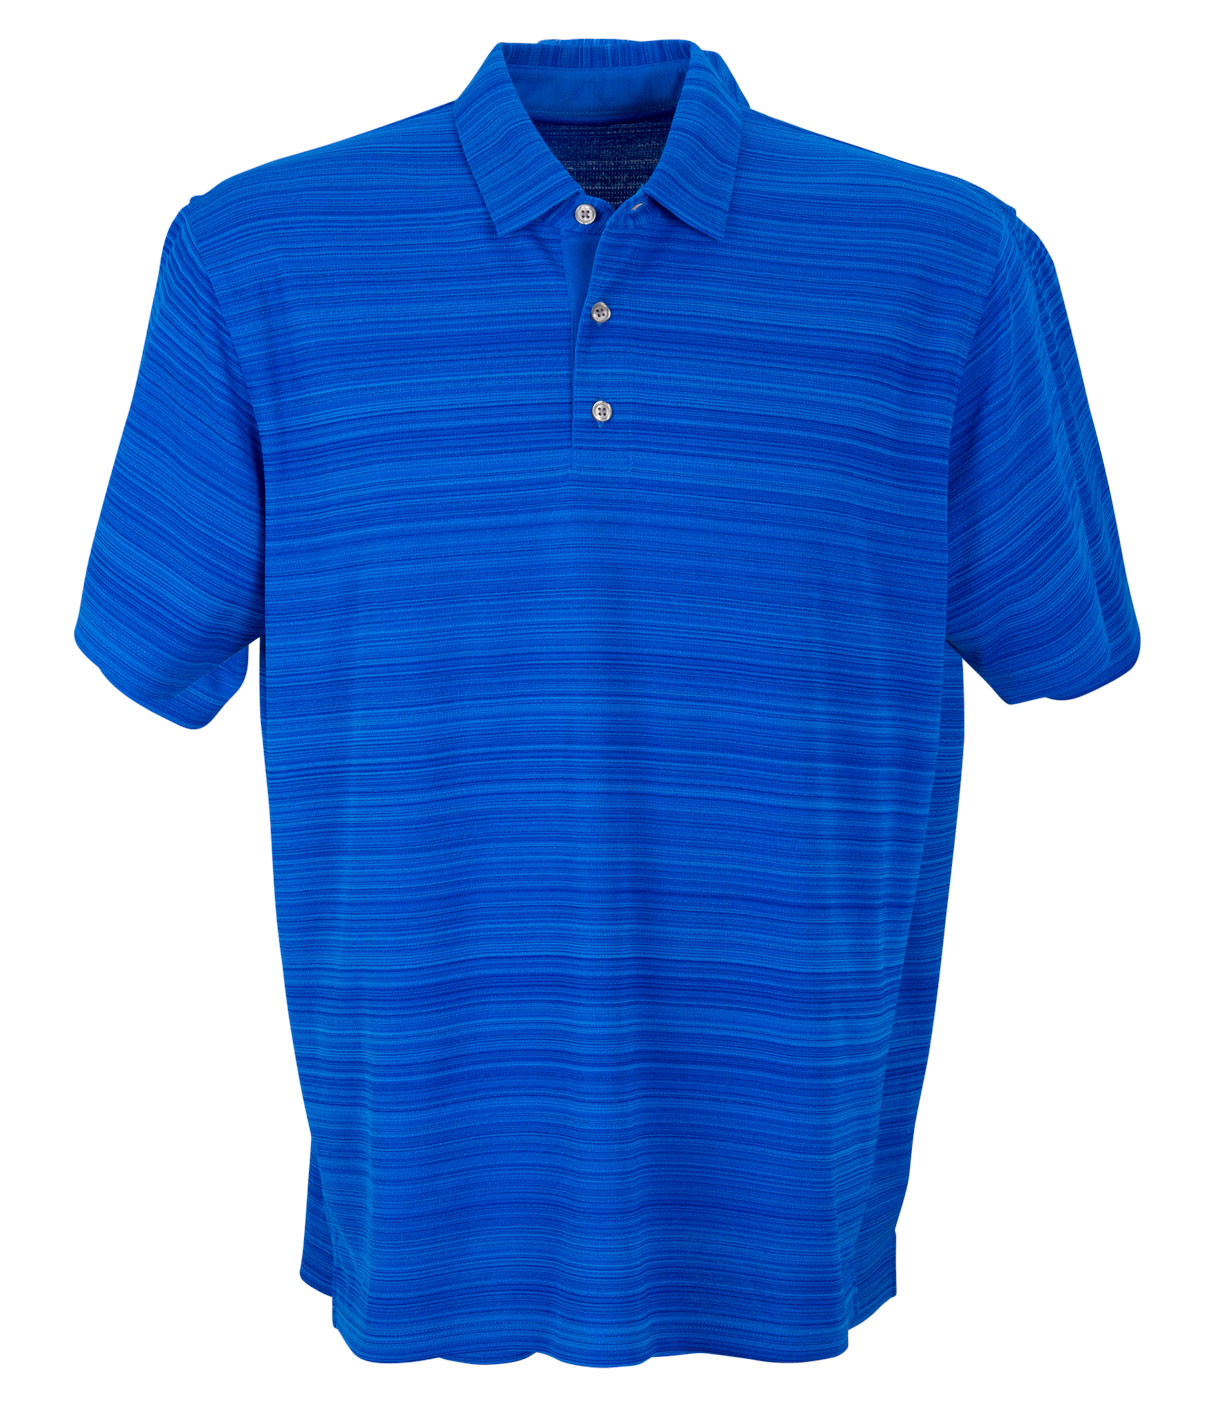 Mens Vansport Strata Textured Polo